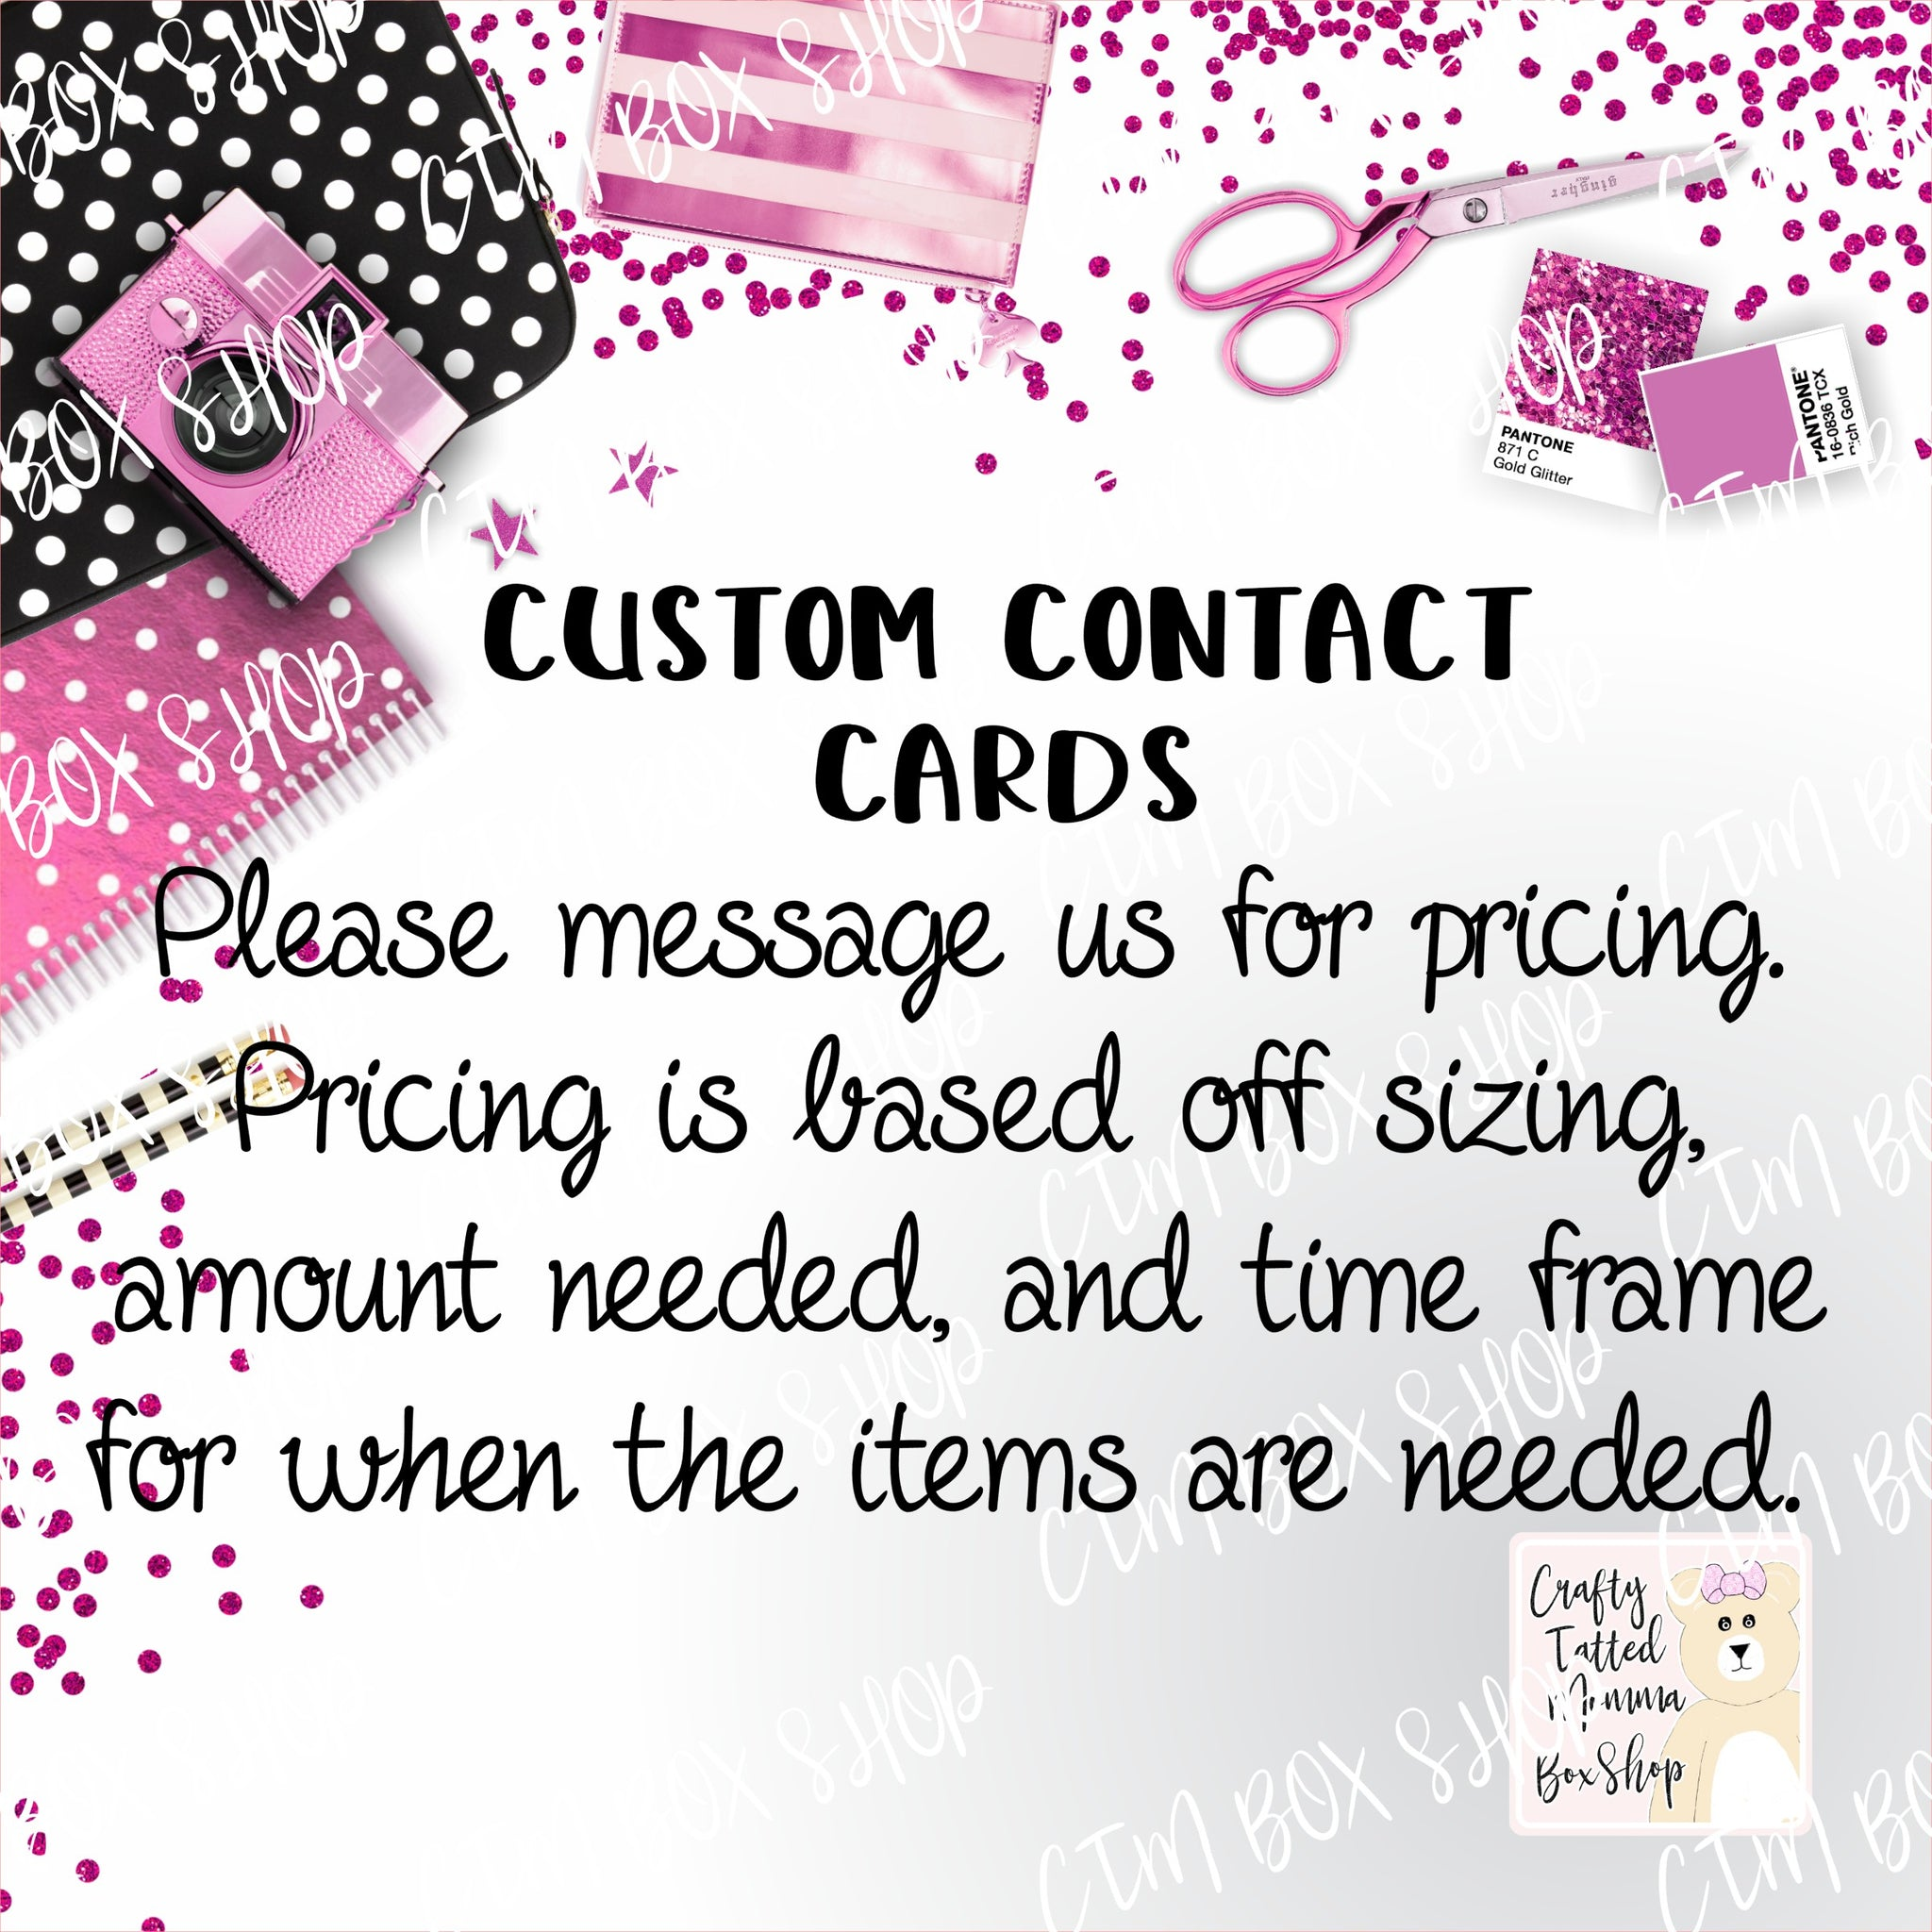 Custom Contact Cards ****Do Not Purchase This Listing****